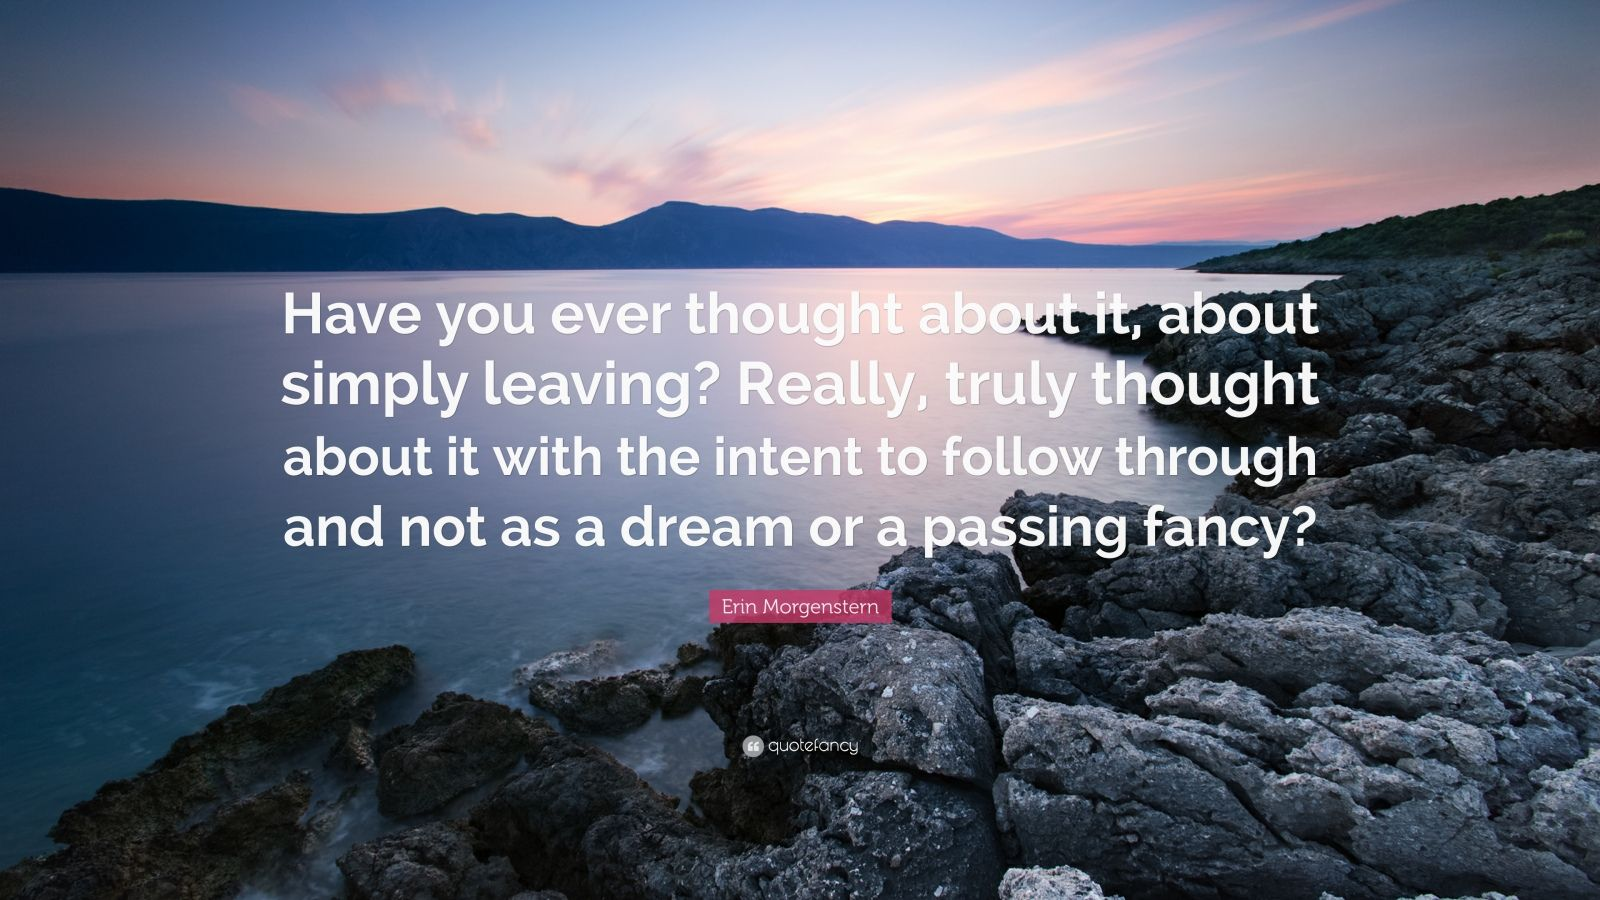 """Erin Morgenstern Quote: """"Have you ever thought about it, about simply leaving? Really, truly thought about it with the intent to follow through and not as a dream or a passing fancy?"""""""